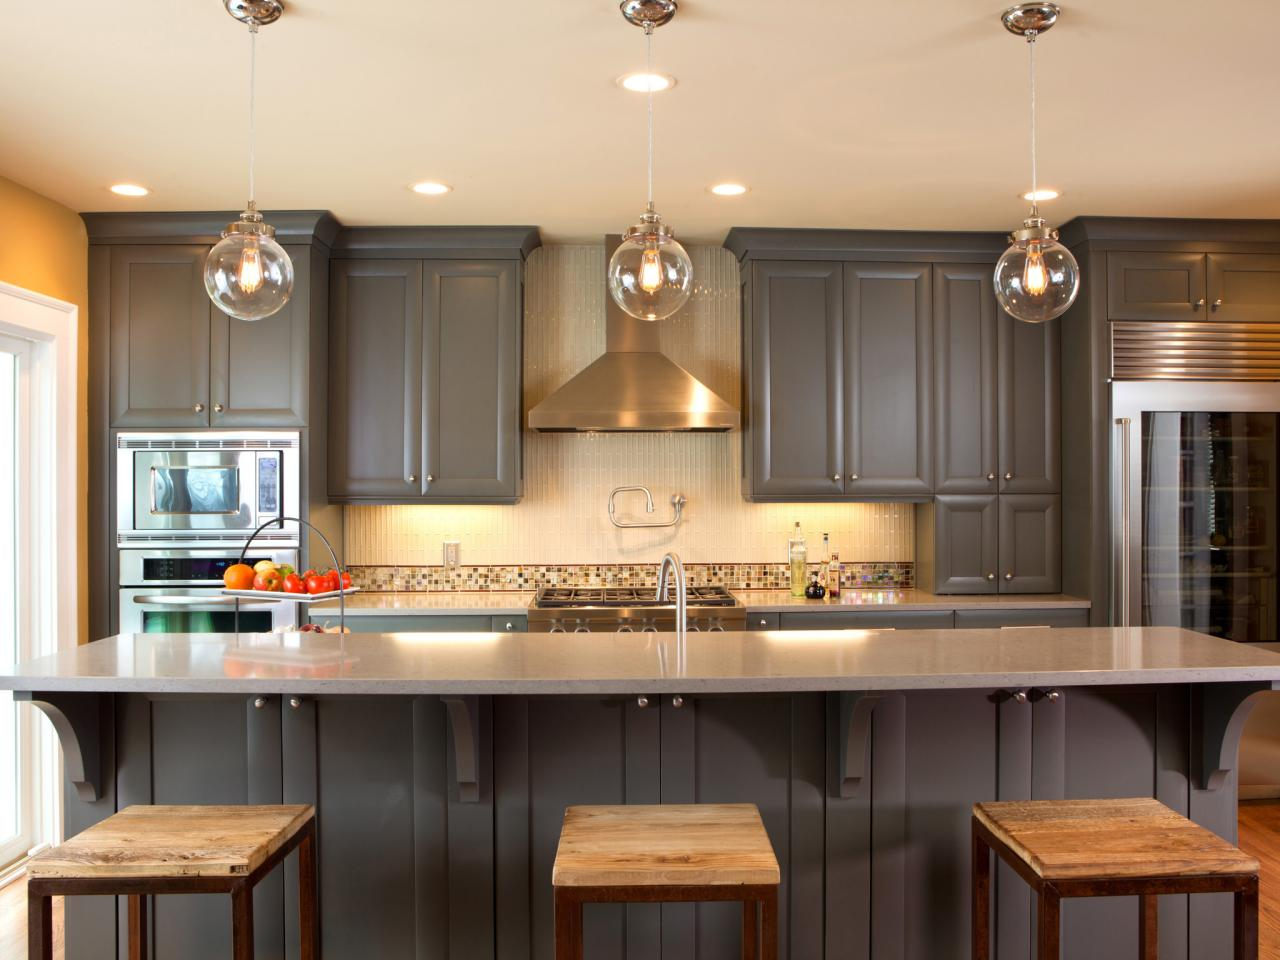 Paint Ideas ideas for painting kitchen cabinets + pictures from hgtv | hgtv